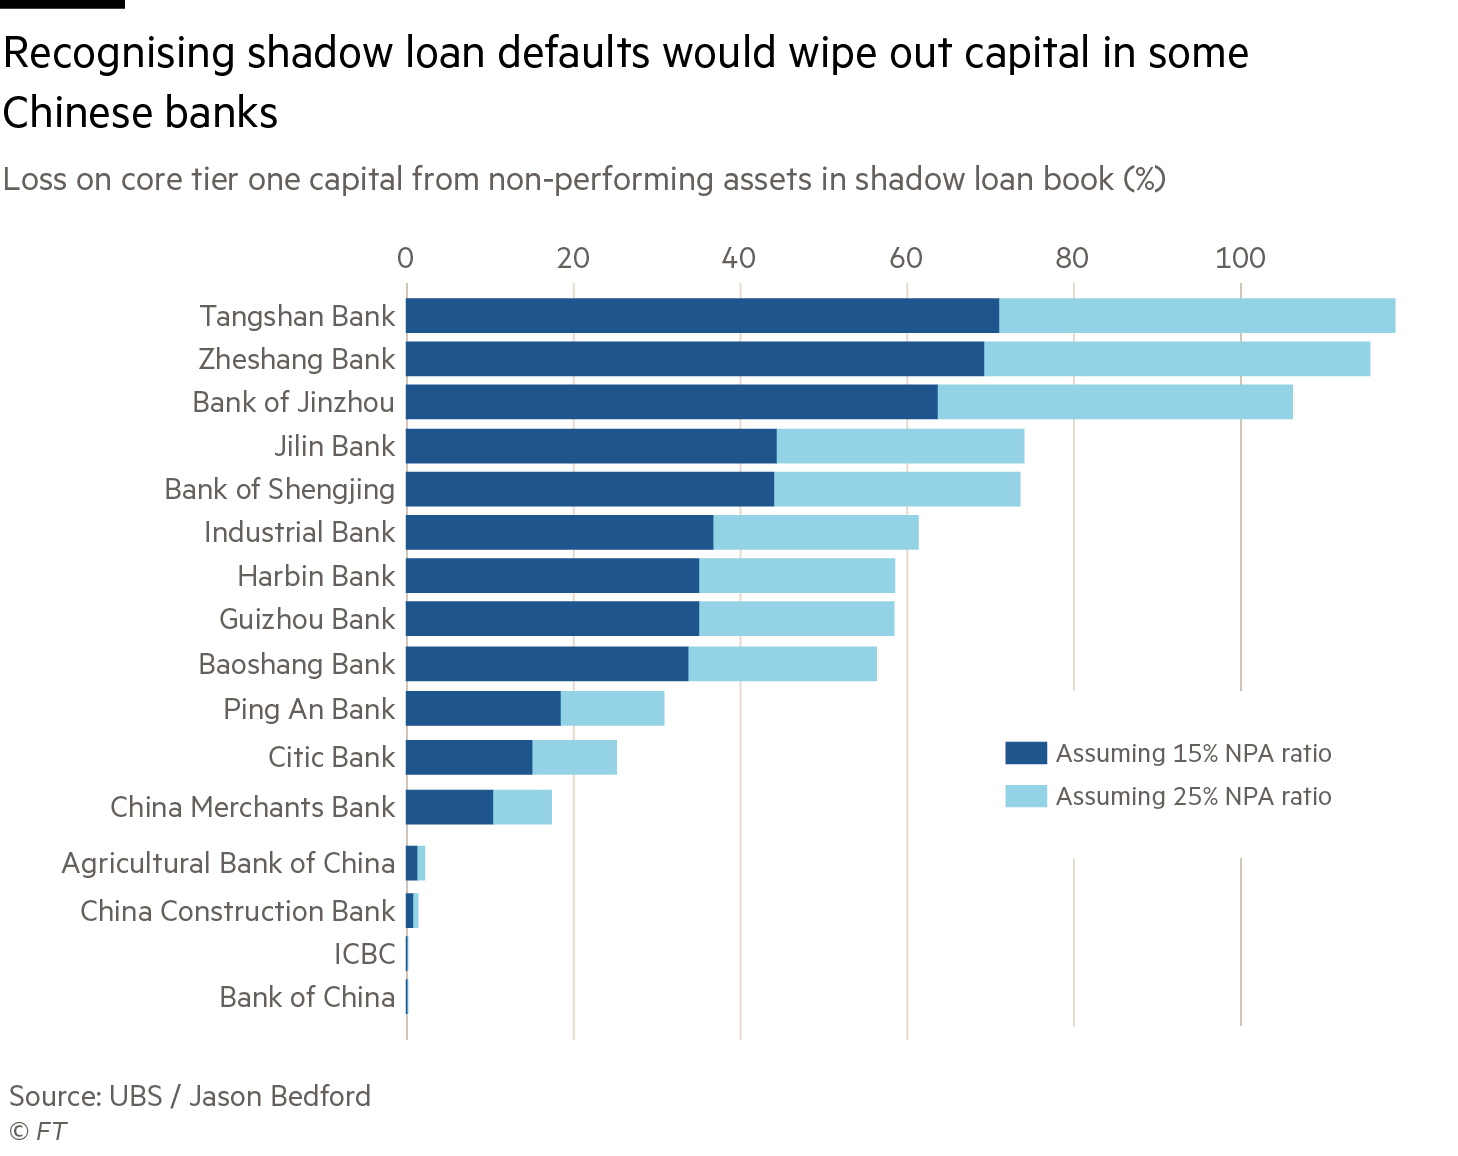 Chart: Recognising shadow loan defaults would wipe out capital in some Chinese banks